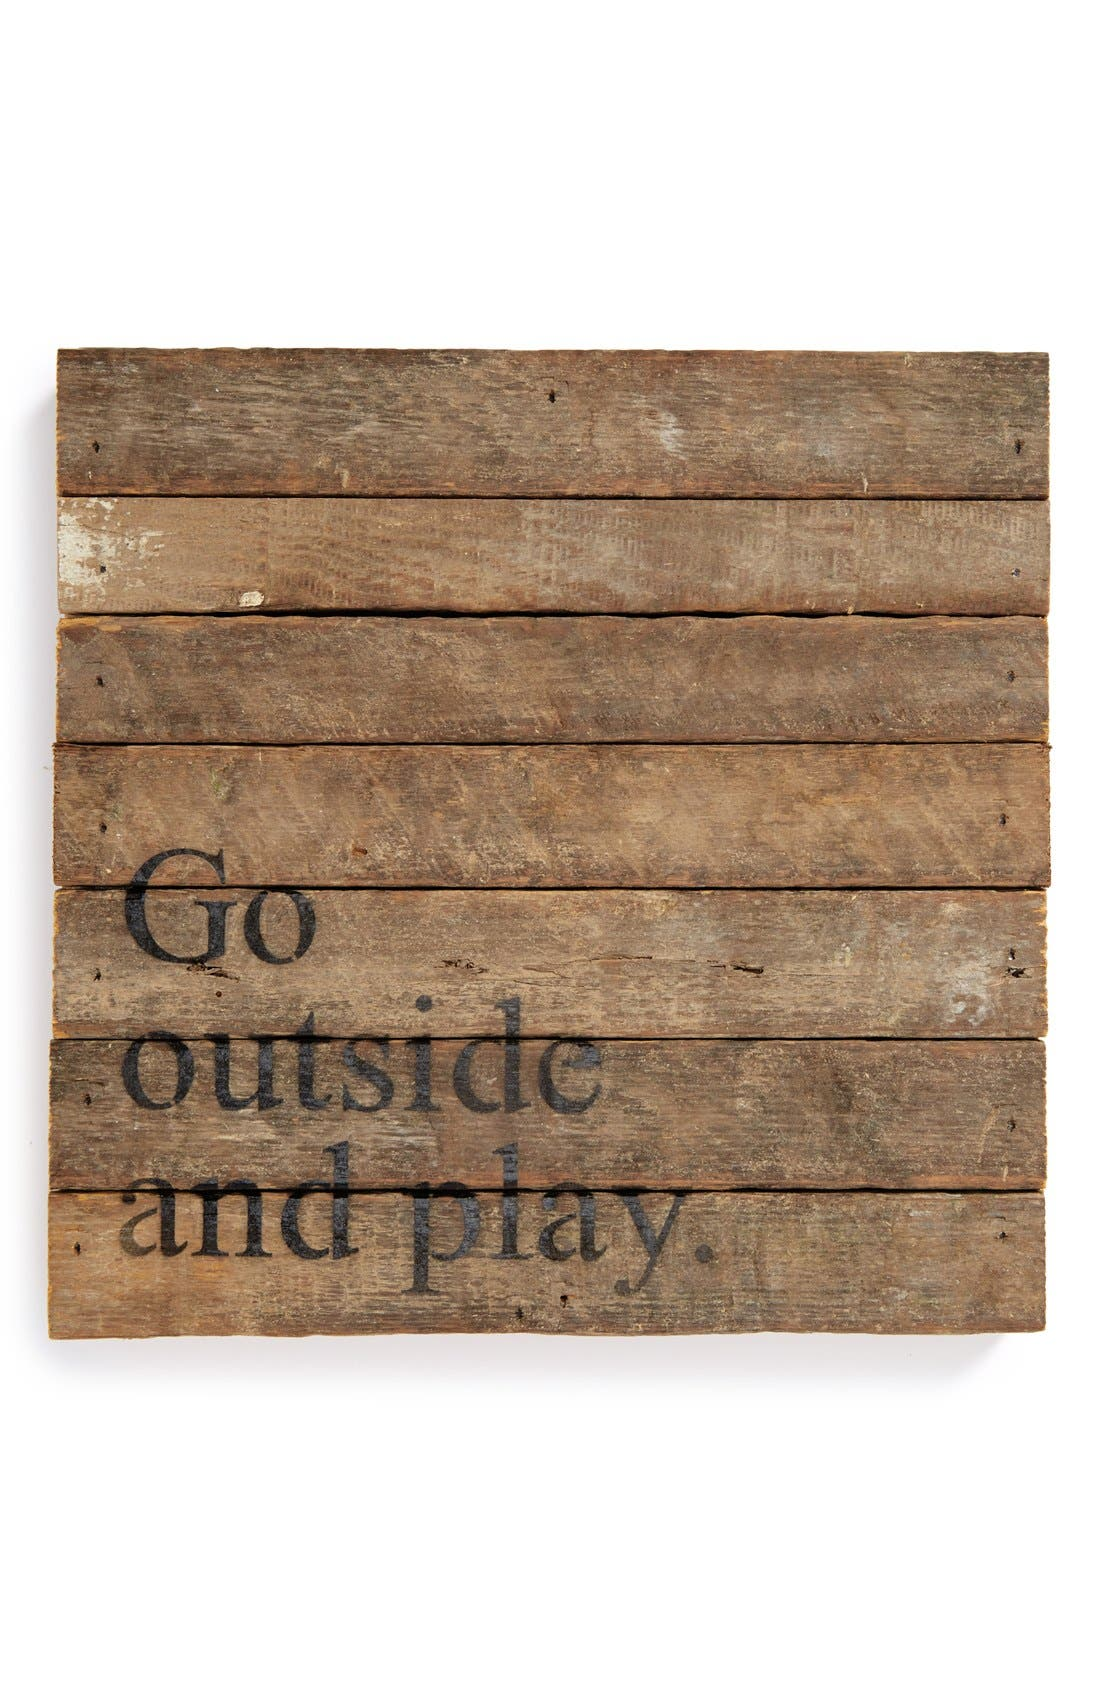 Main Image - Second Nature By Hand 'Go outside and Play' Repurposed Wood Wall Art